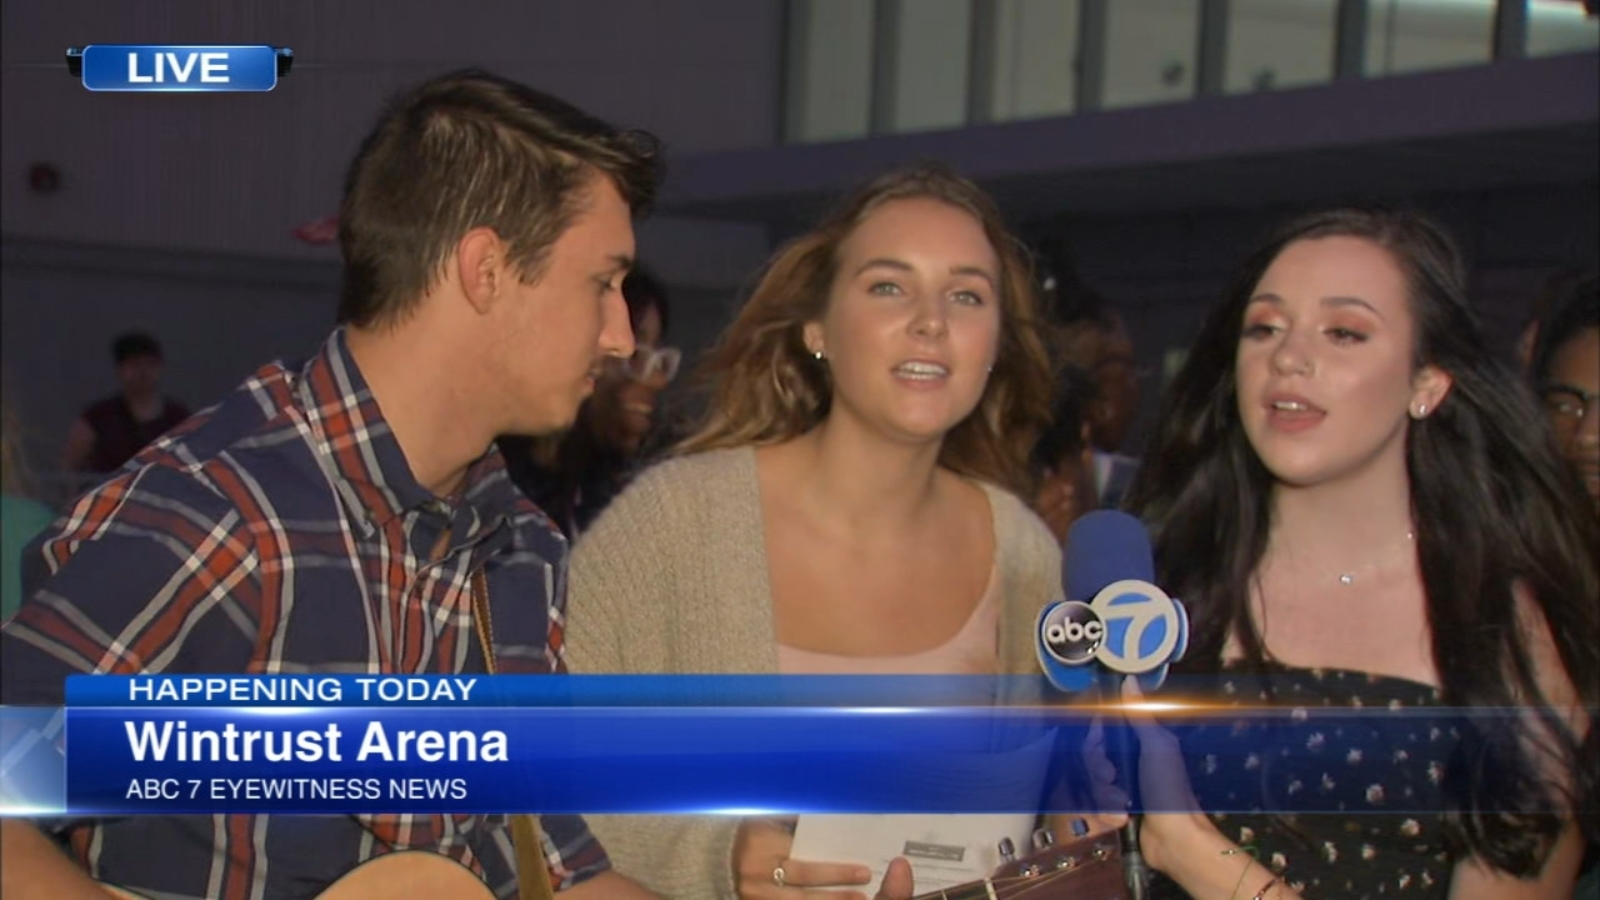 Hundreds audition for American Idol 'golden ticket' at Wintrust Arena